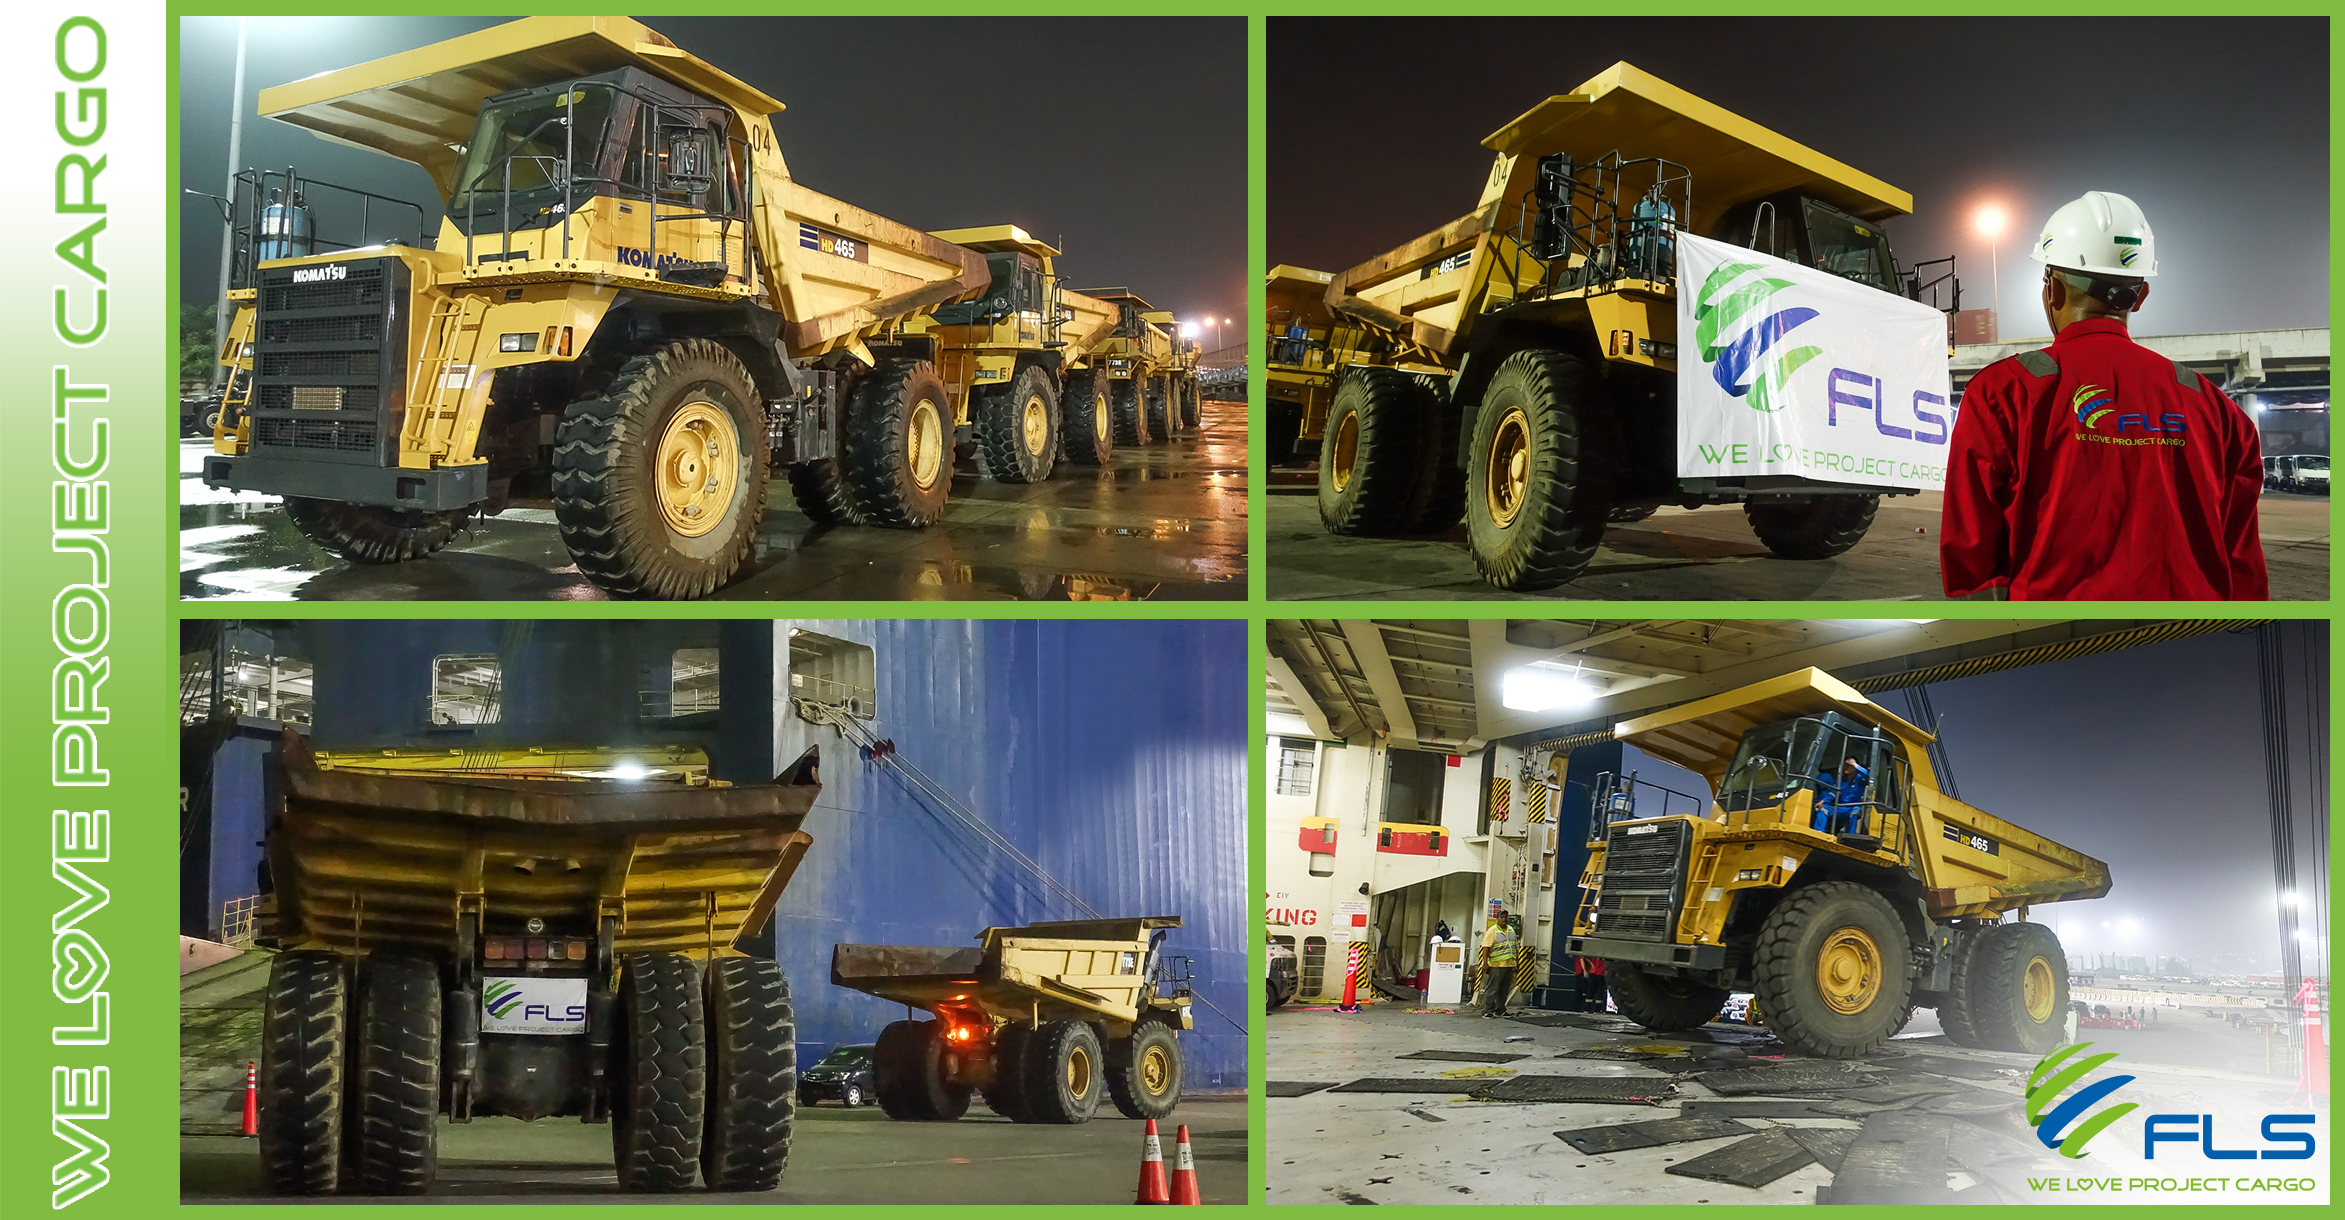 FLS Projects Delivers Dump Trucks To Asia